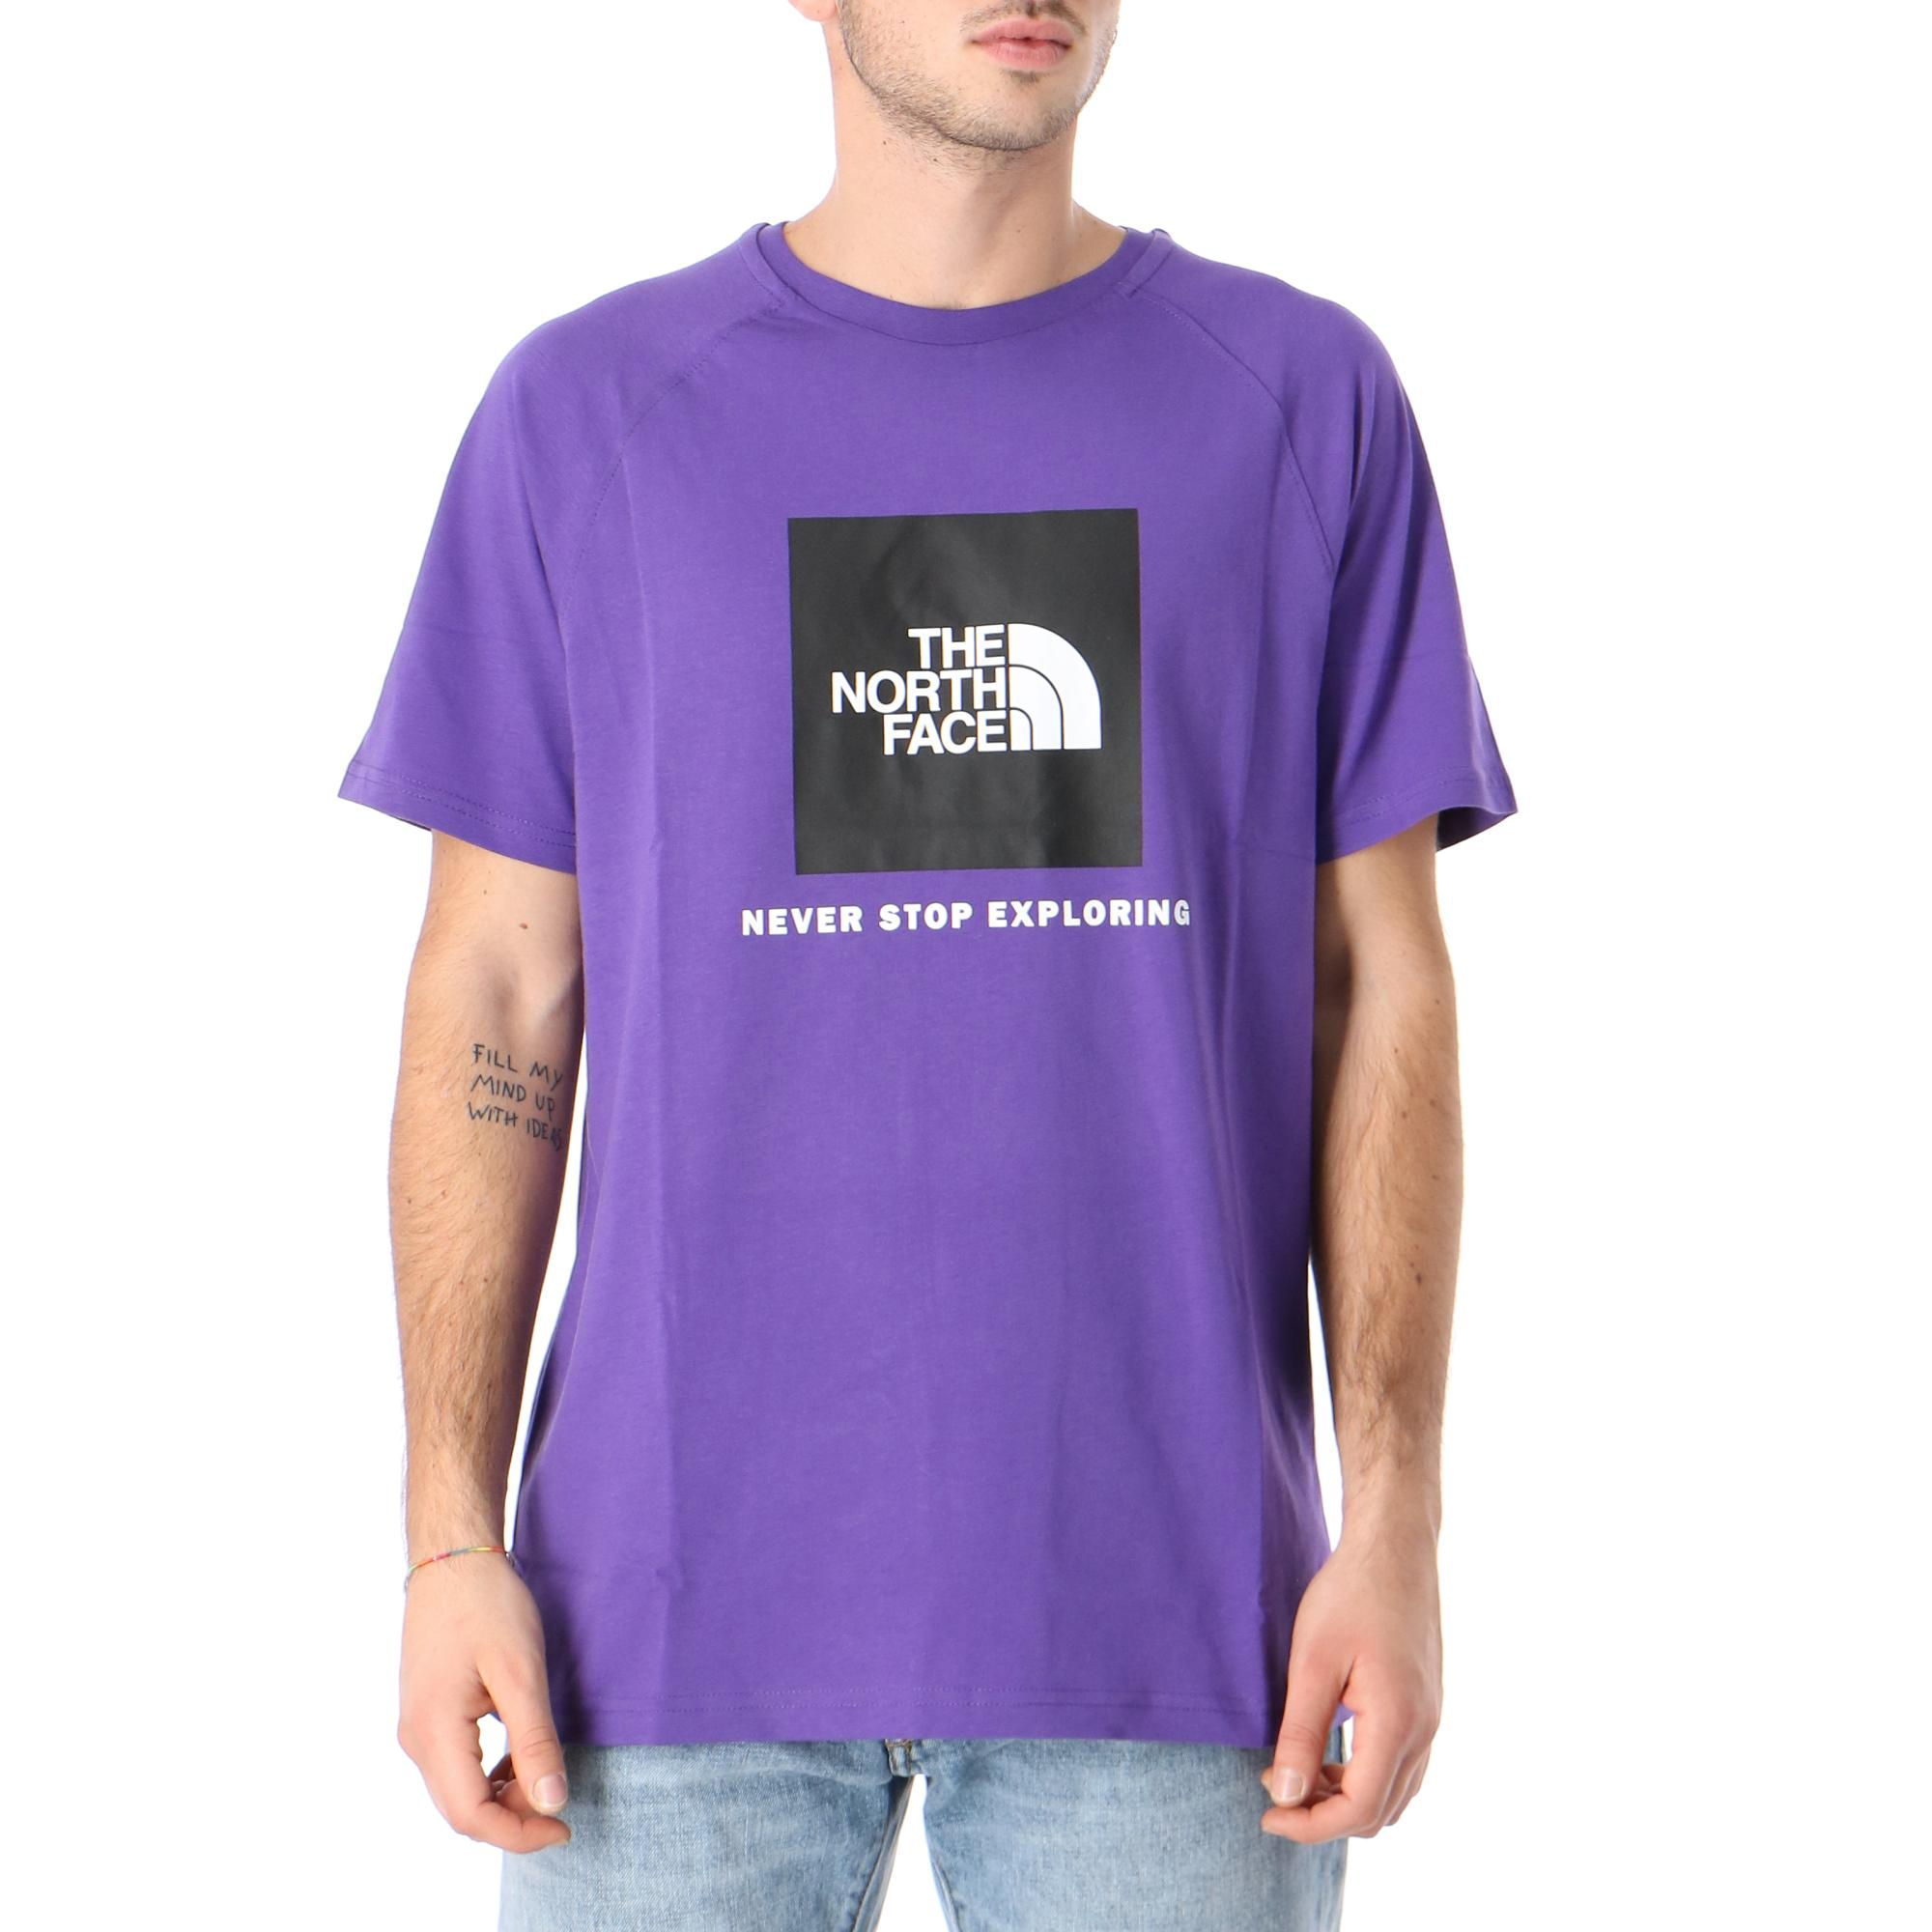 The North Face M S/s Rag Red Box Tee Peak purple